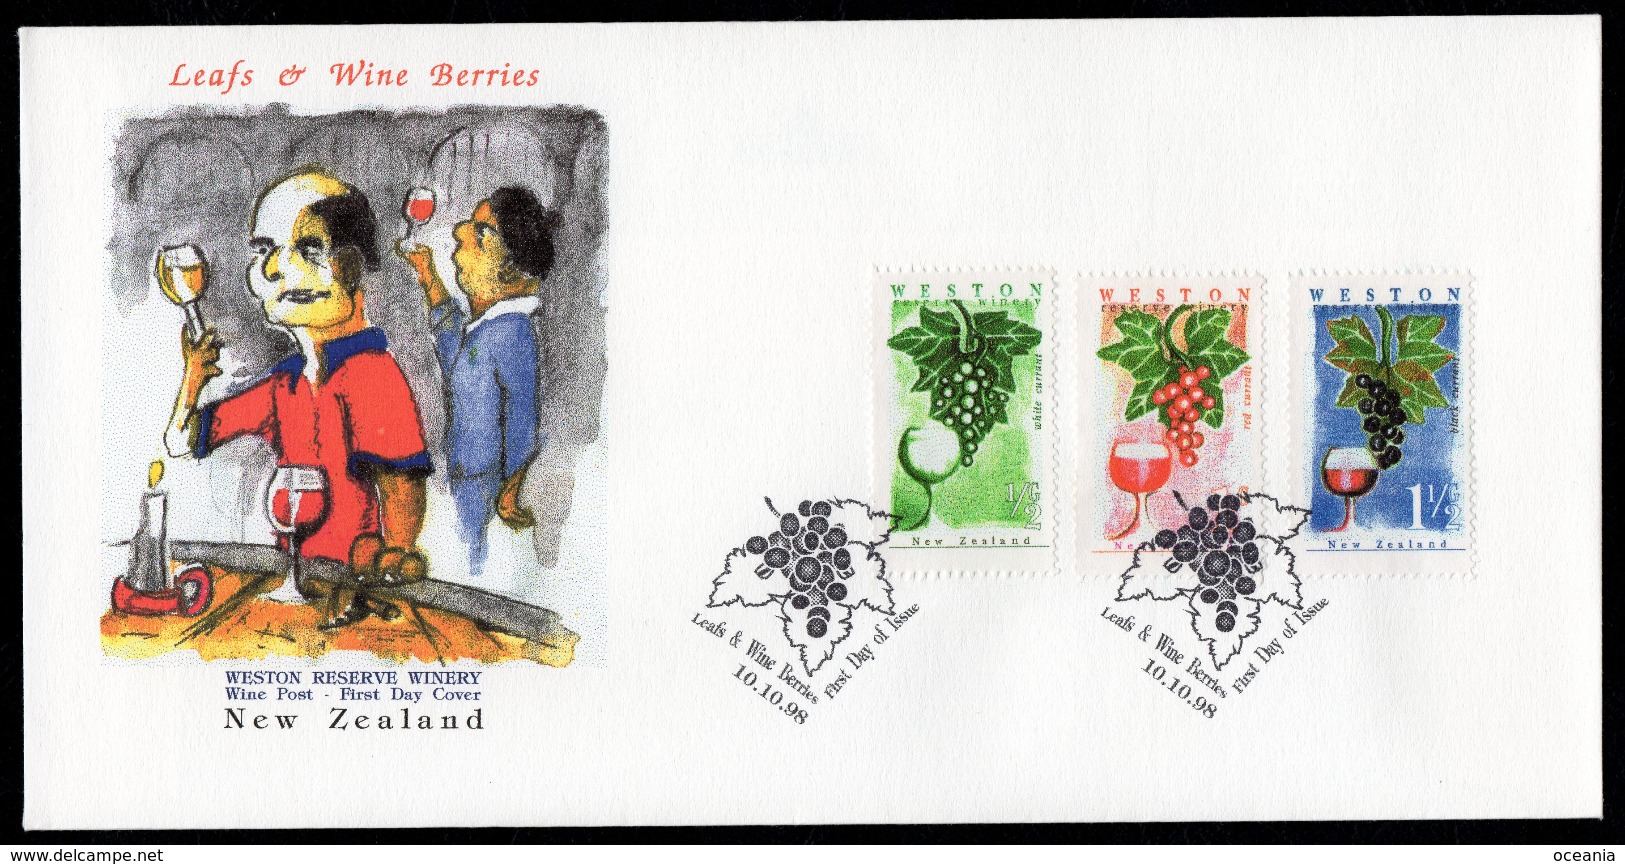 New Zealand Wine Post First Day Cover. - Unclassified